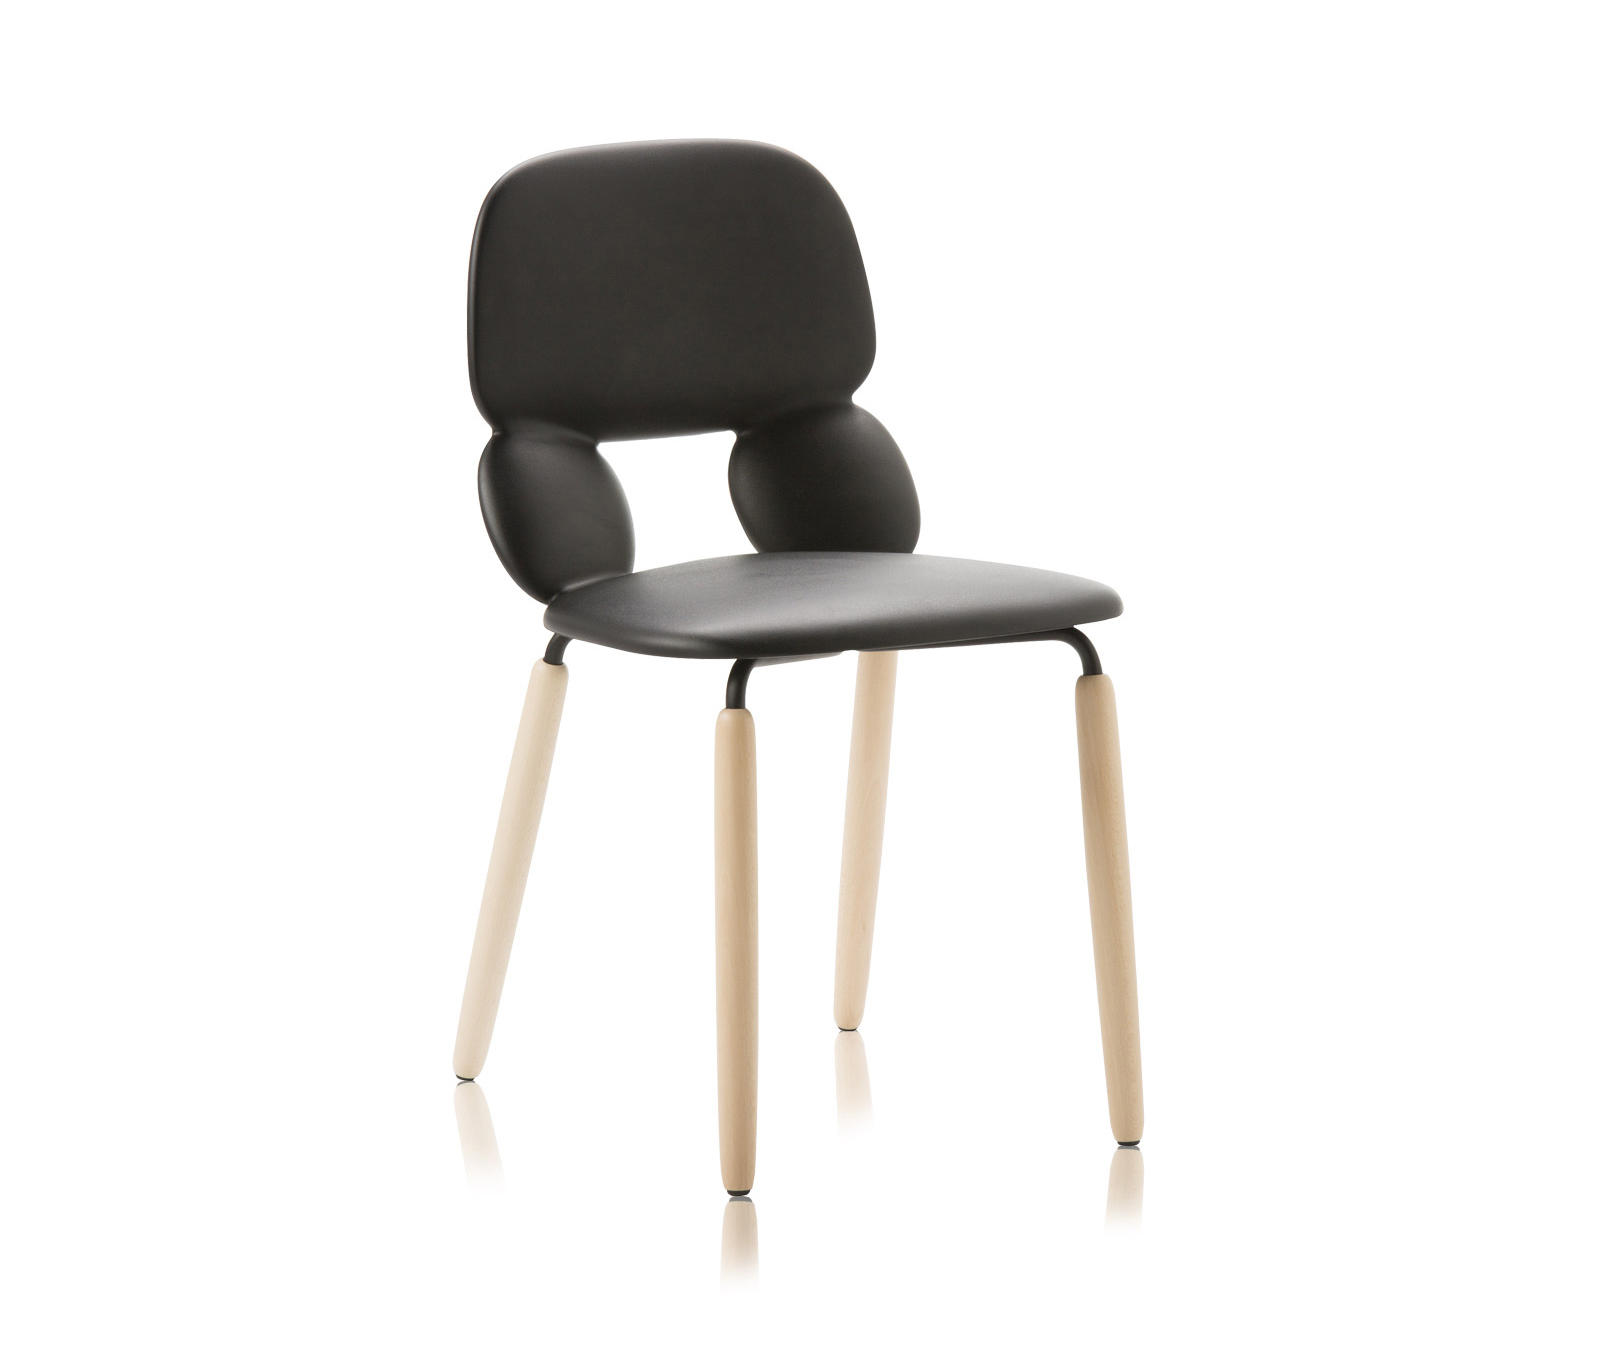 Chairs And More: NUBE W - Chairs From CHAIRS & MORE